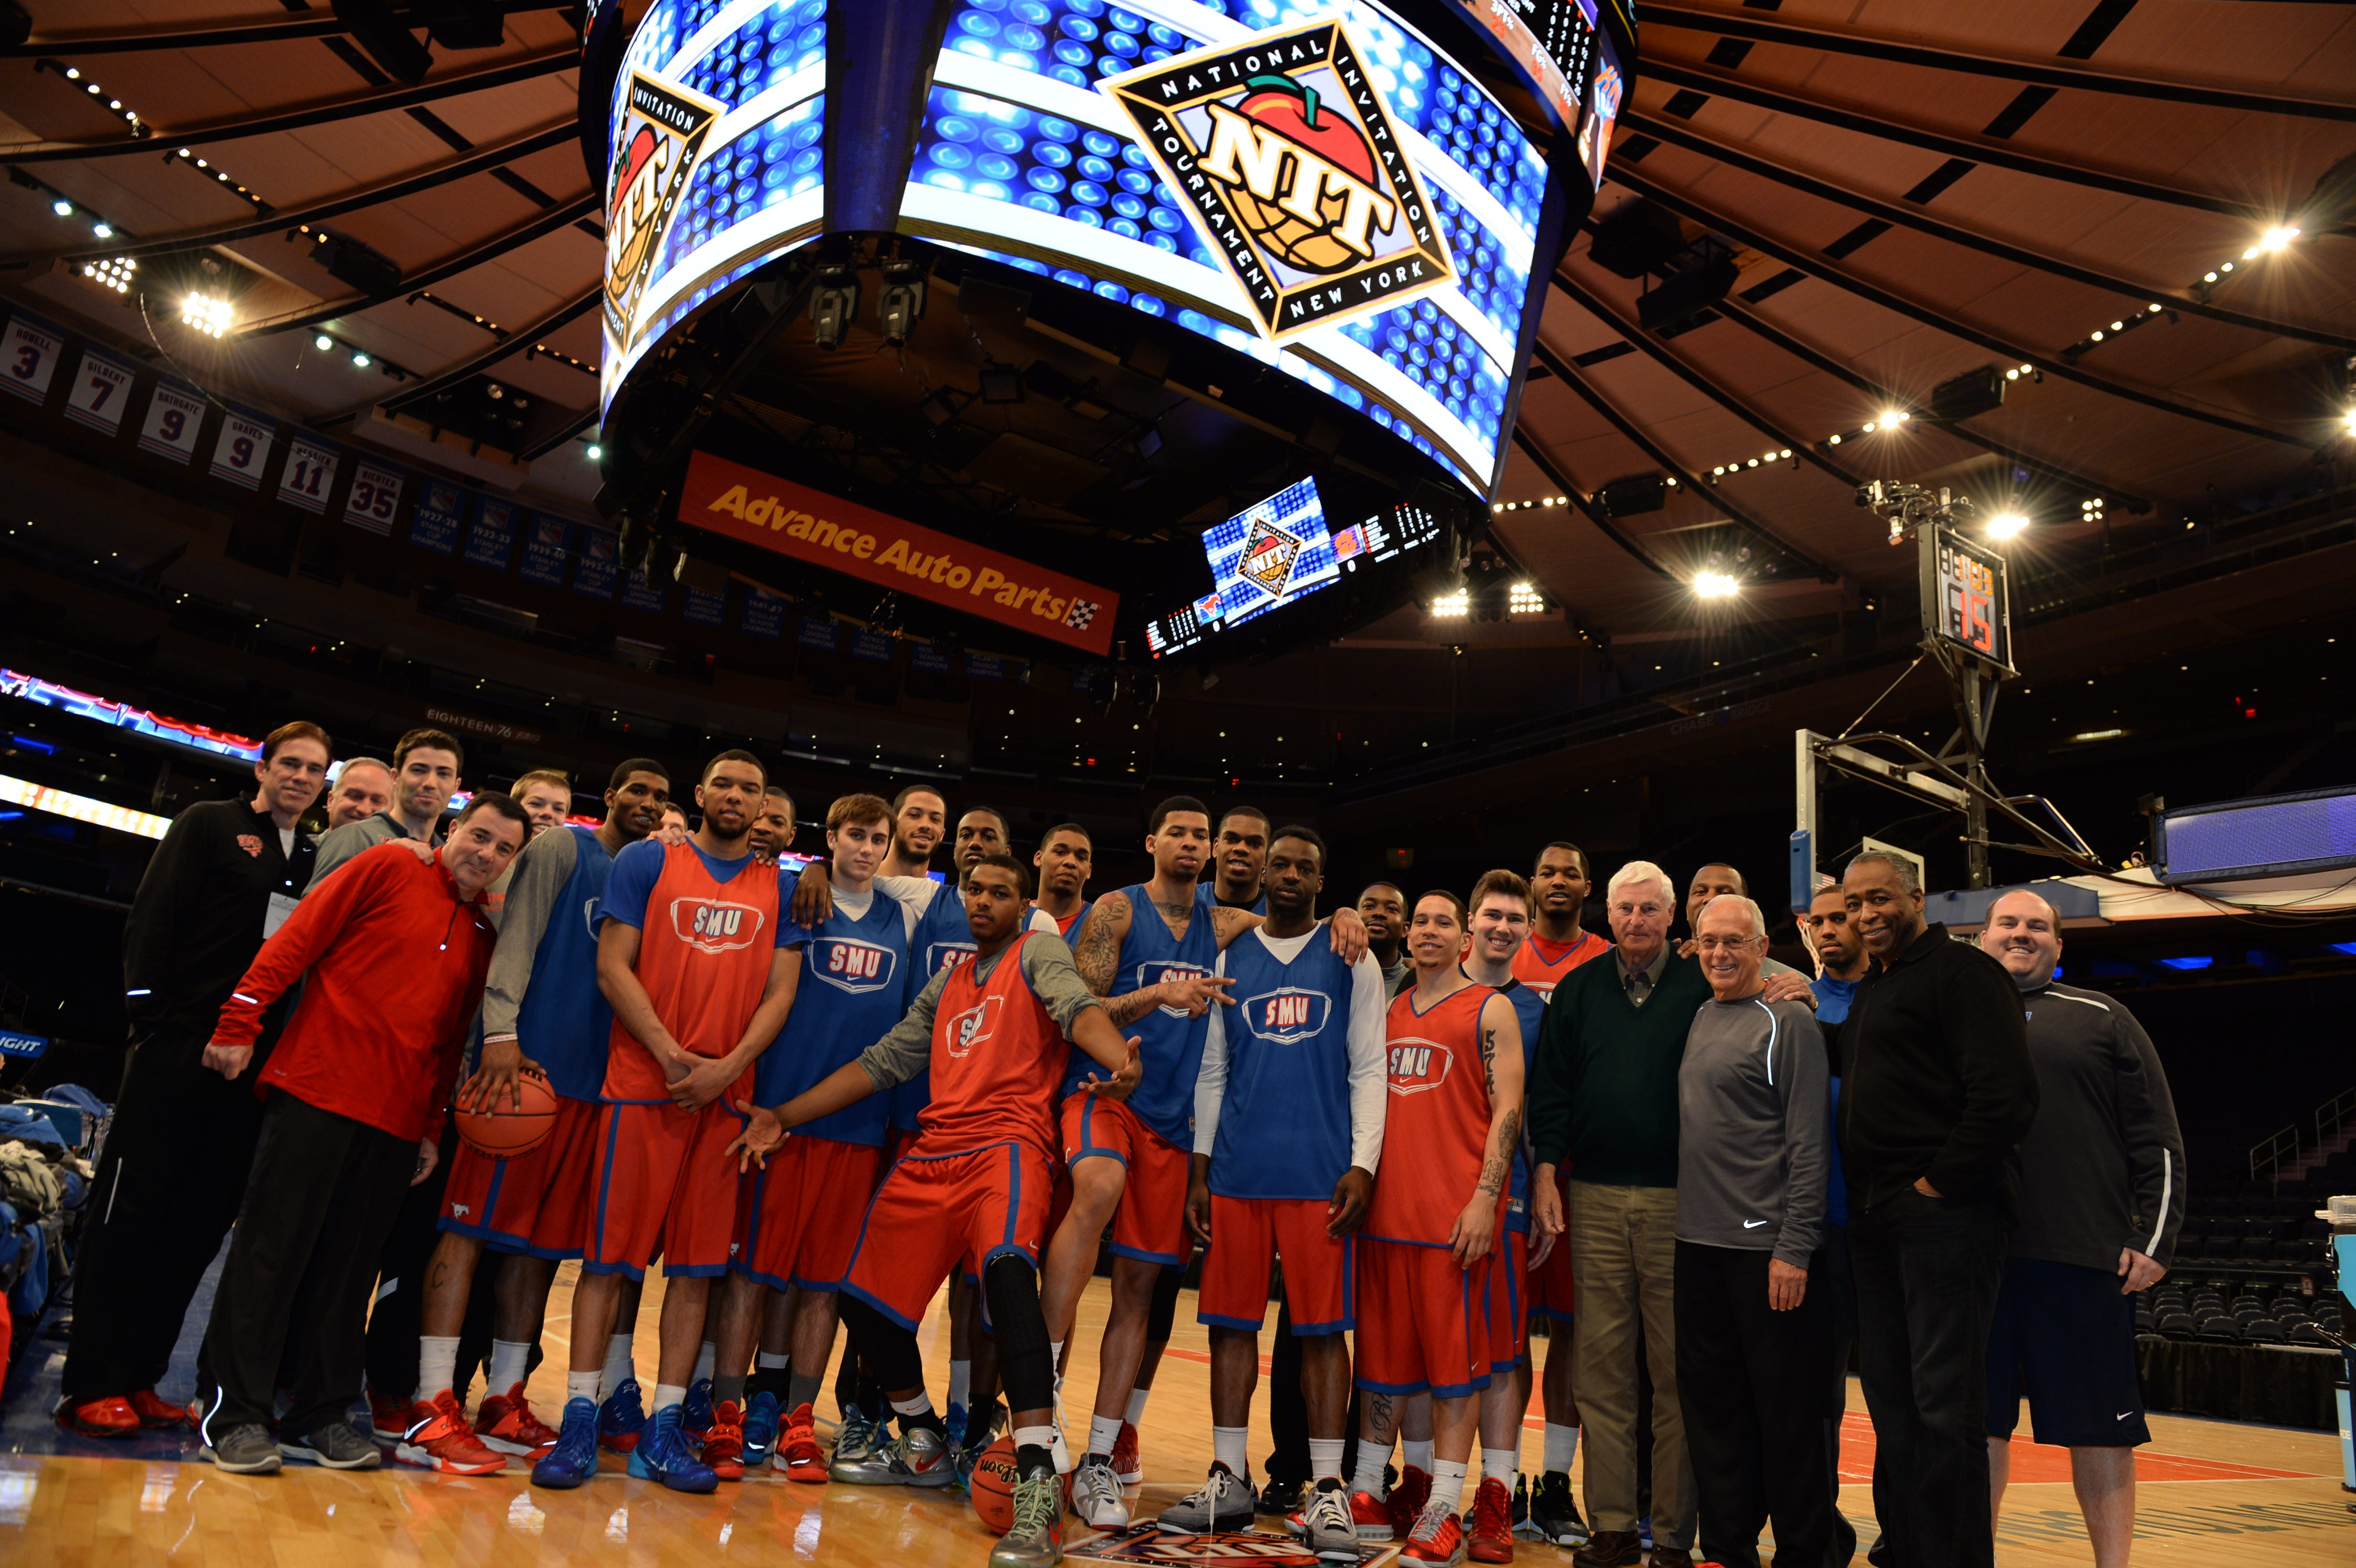 SMU Men's Basketball during the shootaround in Madison Square Garden, NIT 2014